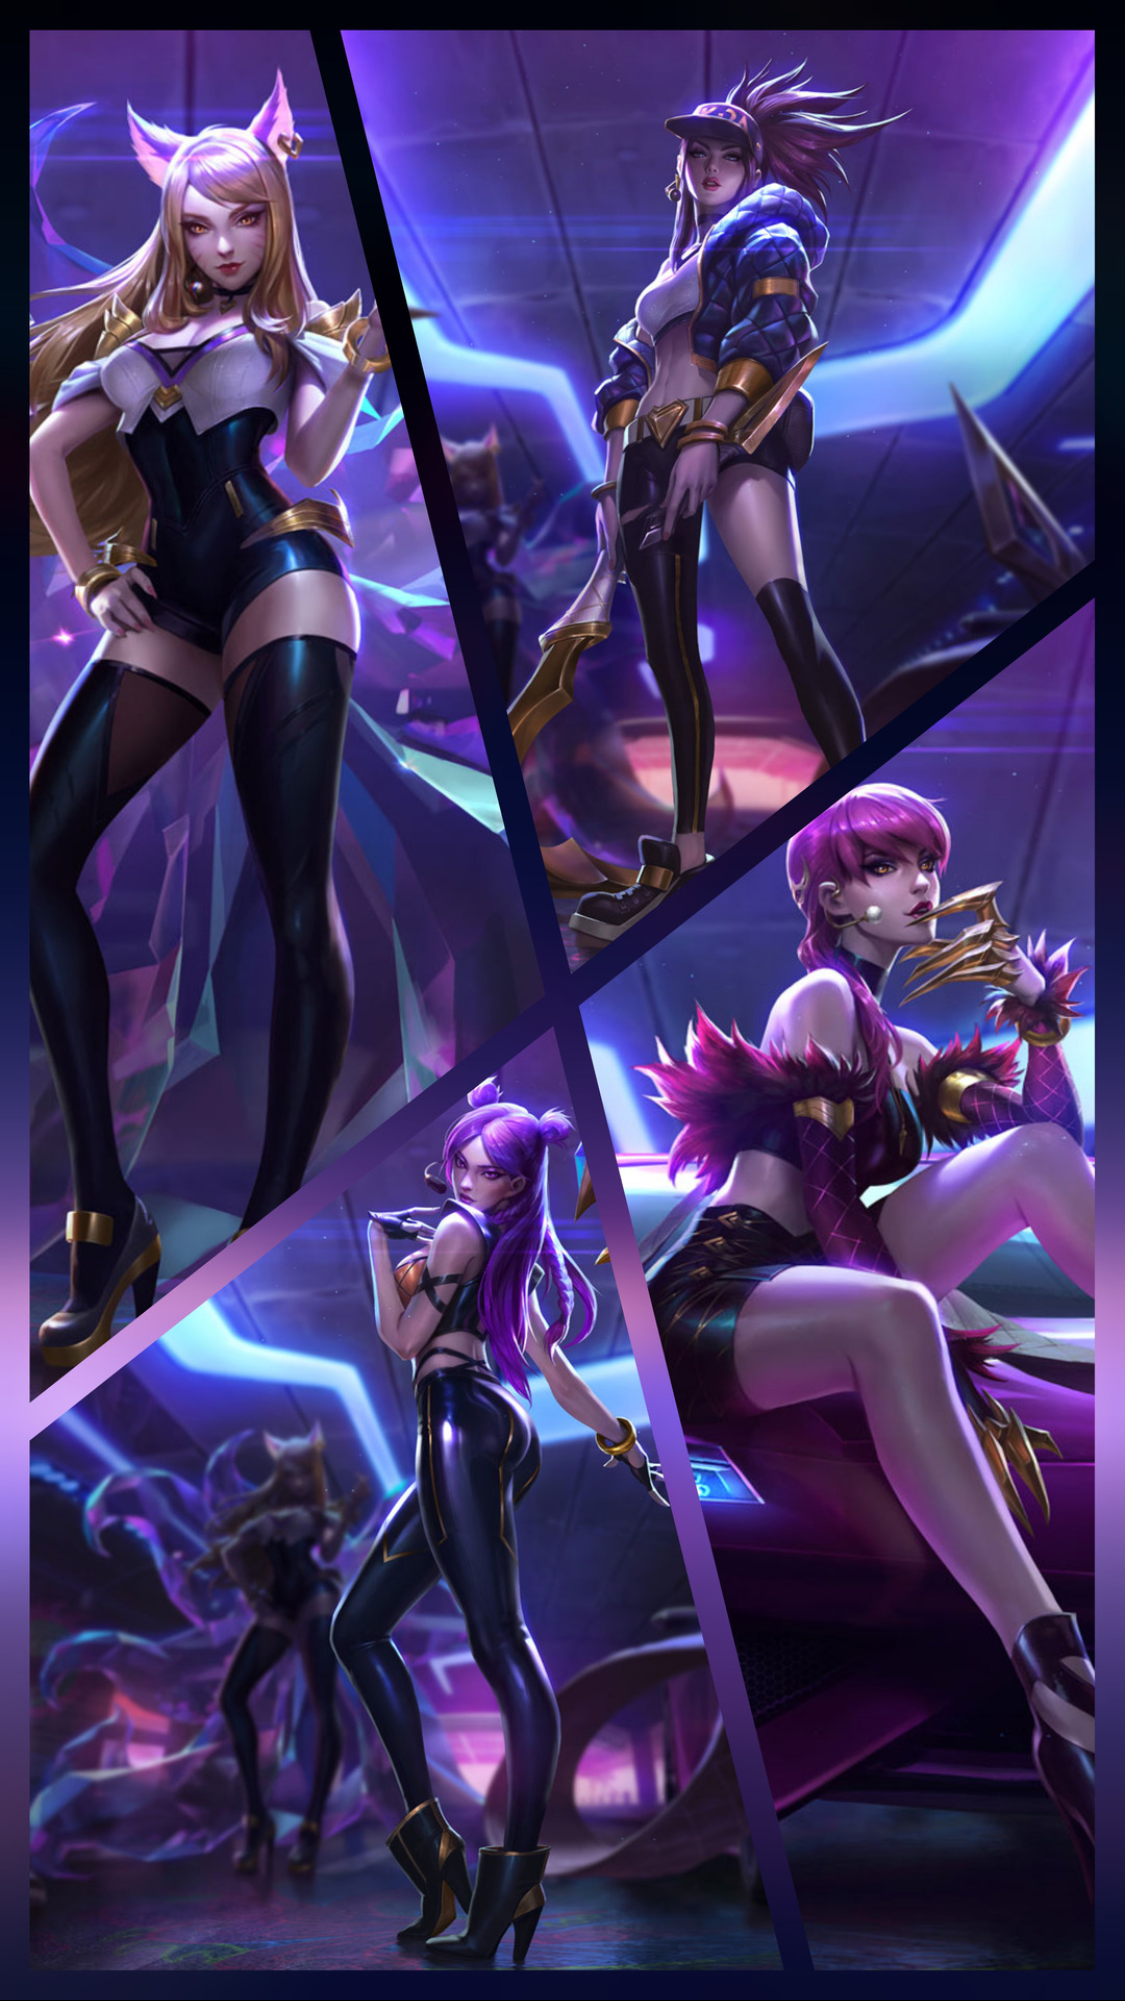 Pin by Sarah Baker on LoL KdA in 2019 | League of legends